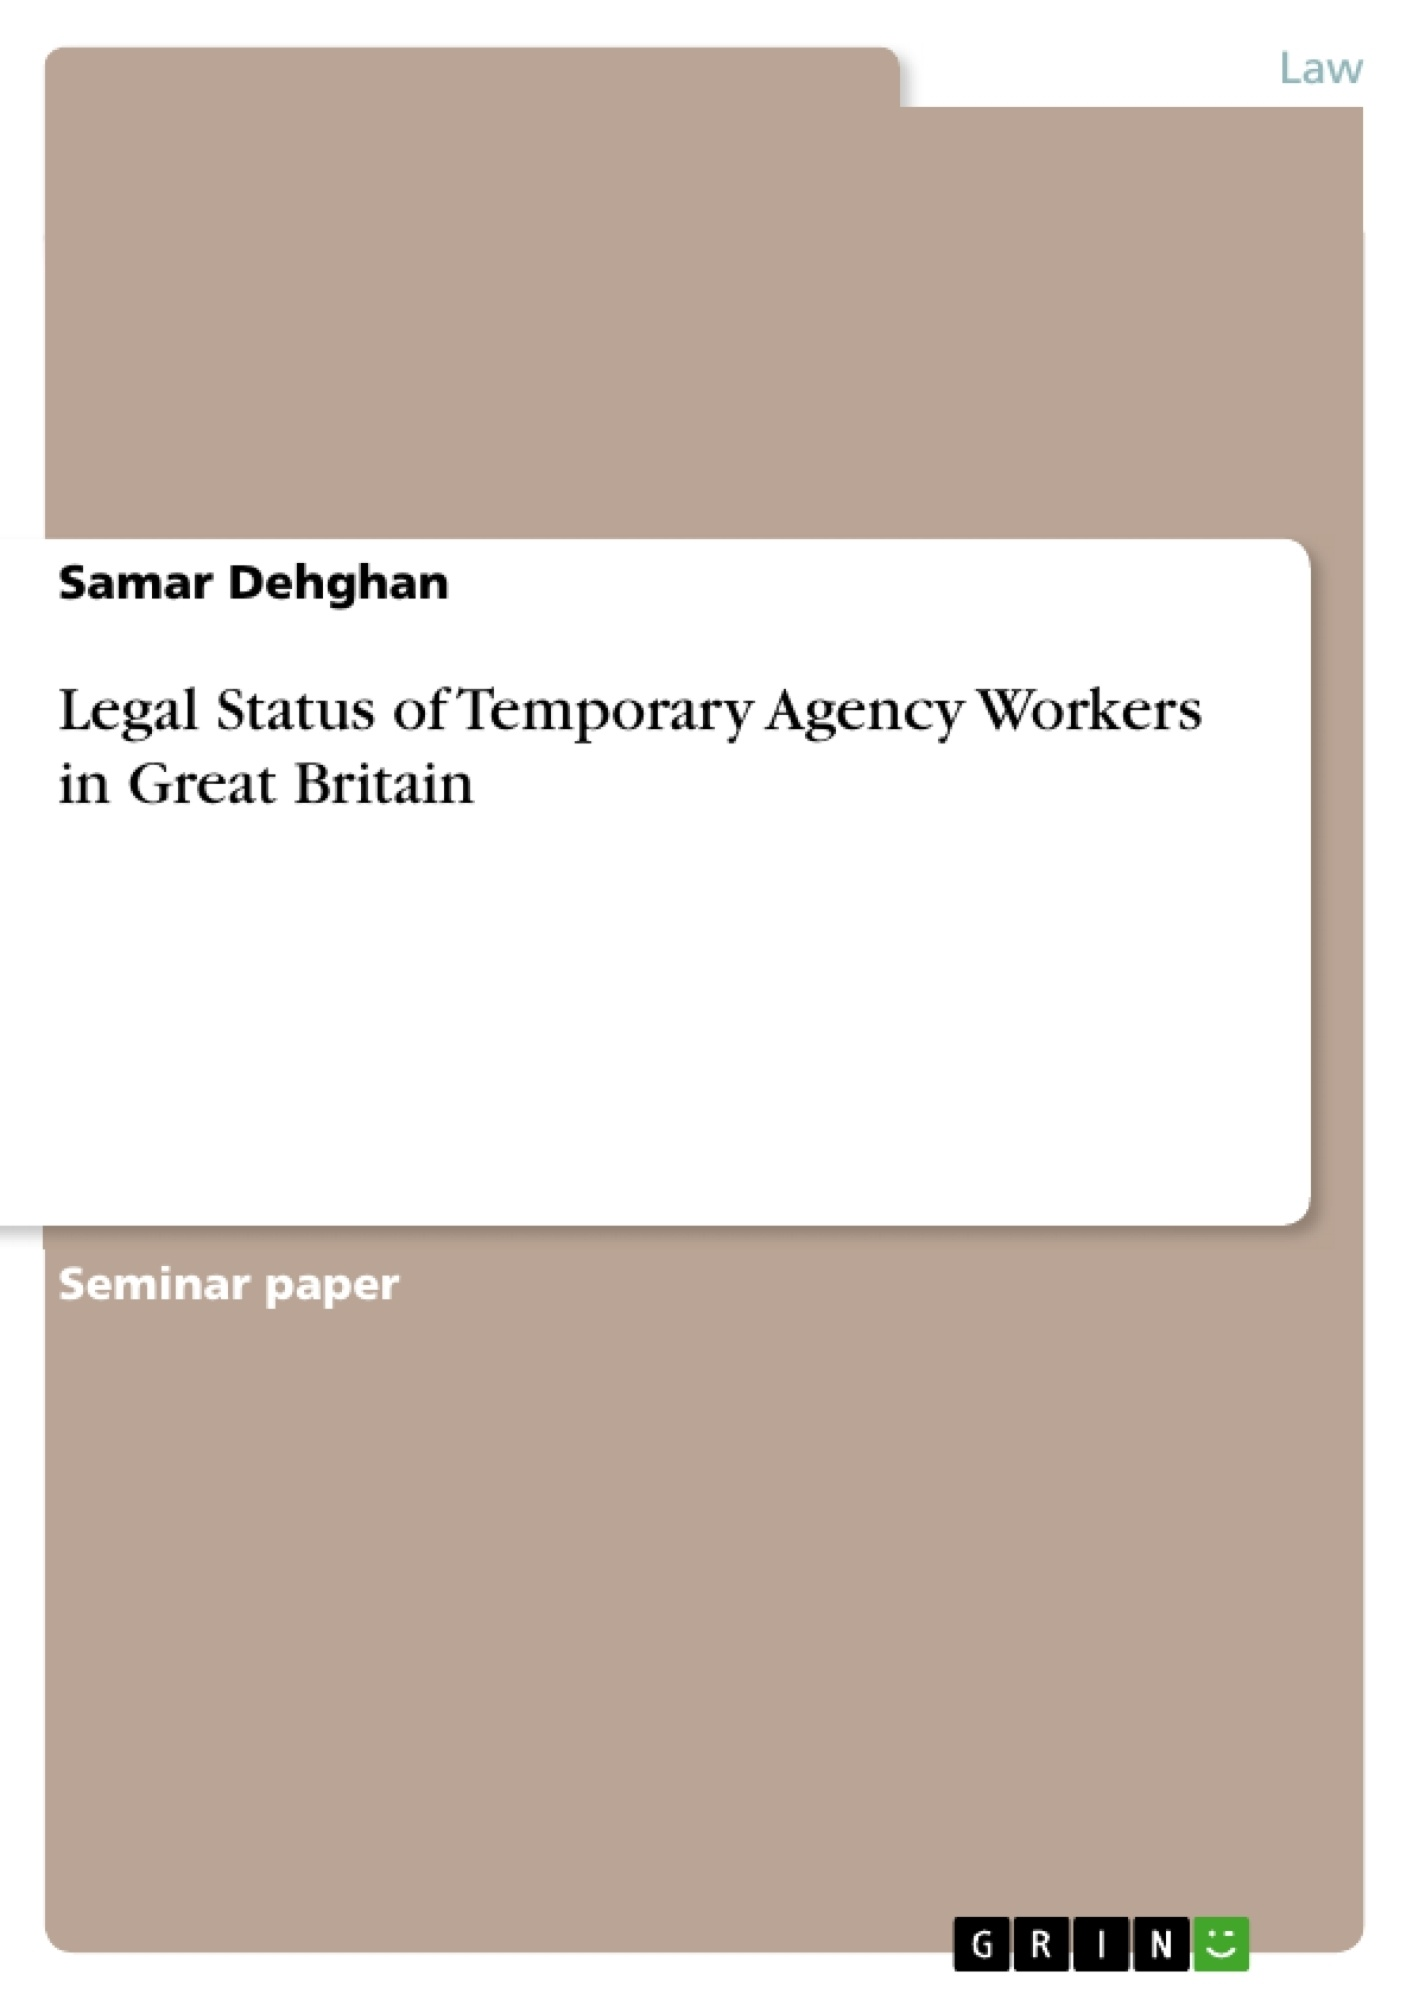 Title: Legal Status of Temporary Agency Workers in Great Britain